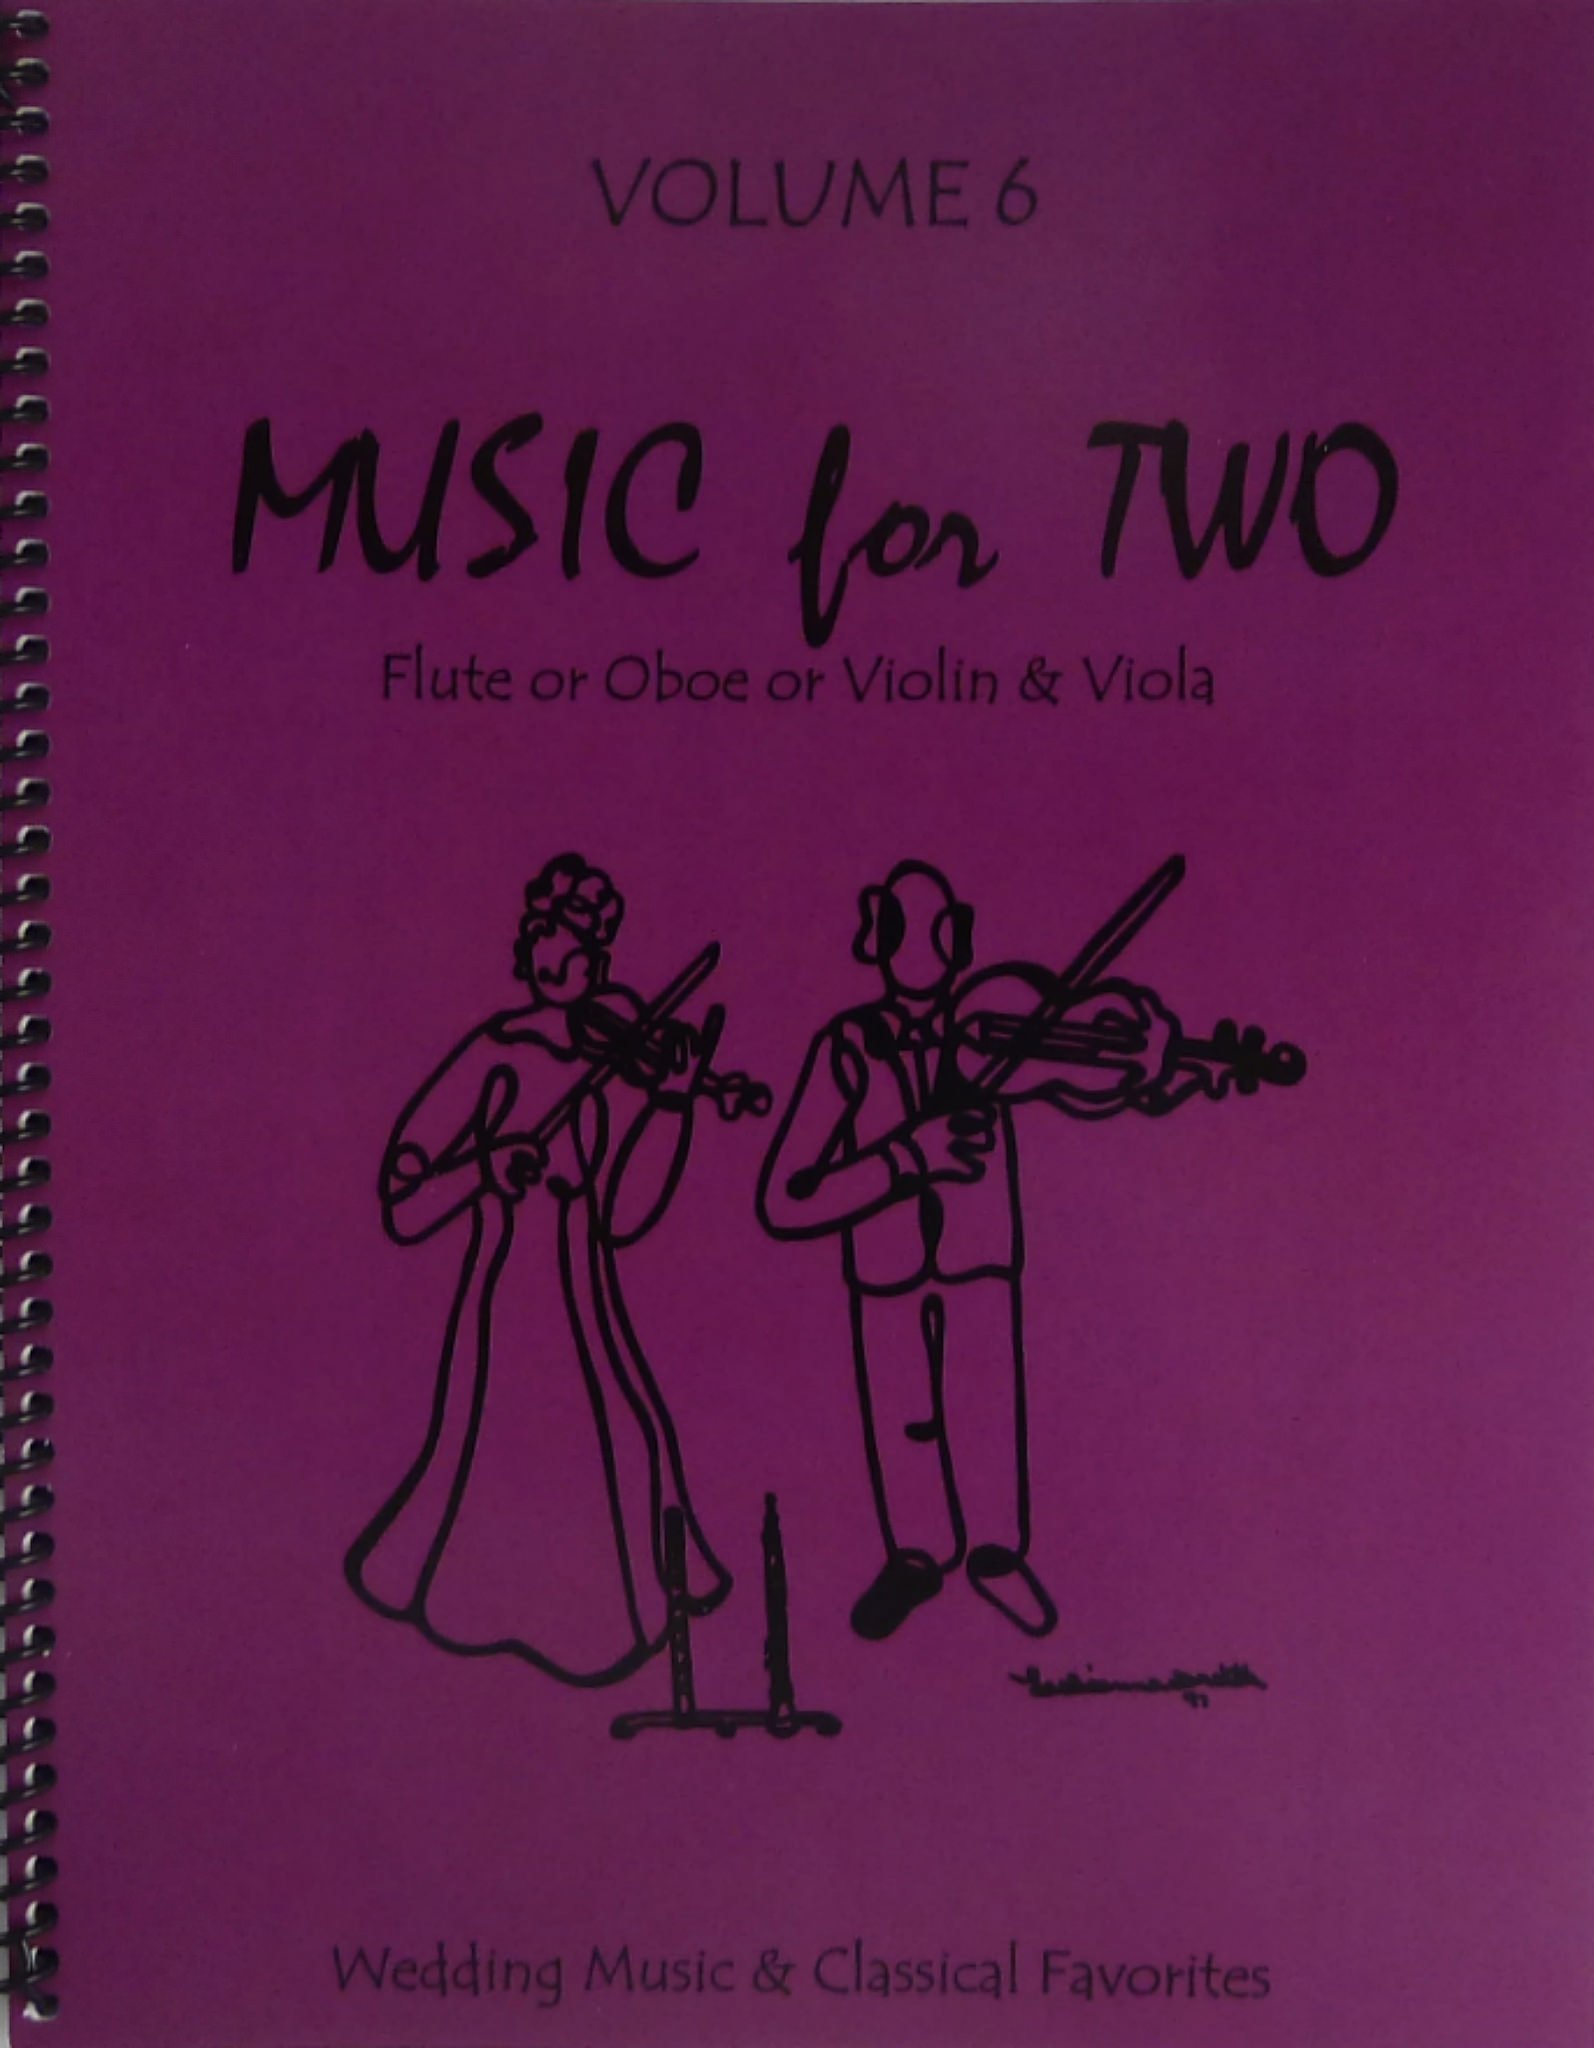 Music for Two, Volume 6 for Flute or Oboe or Violin & Viola